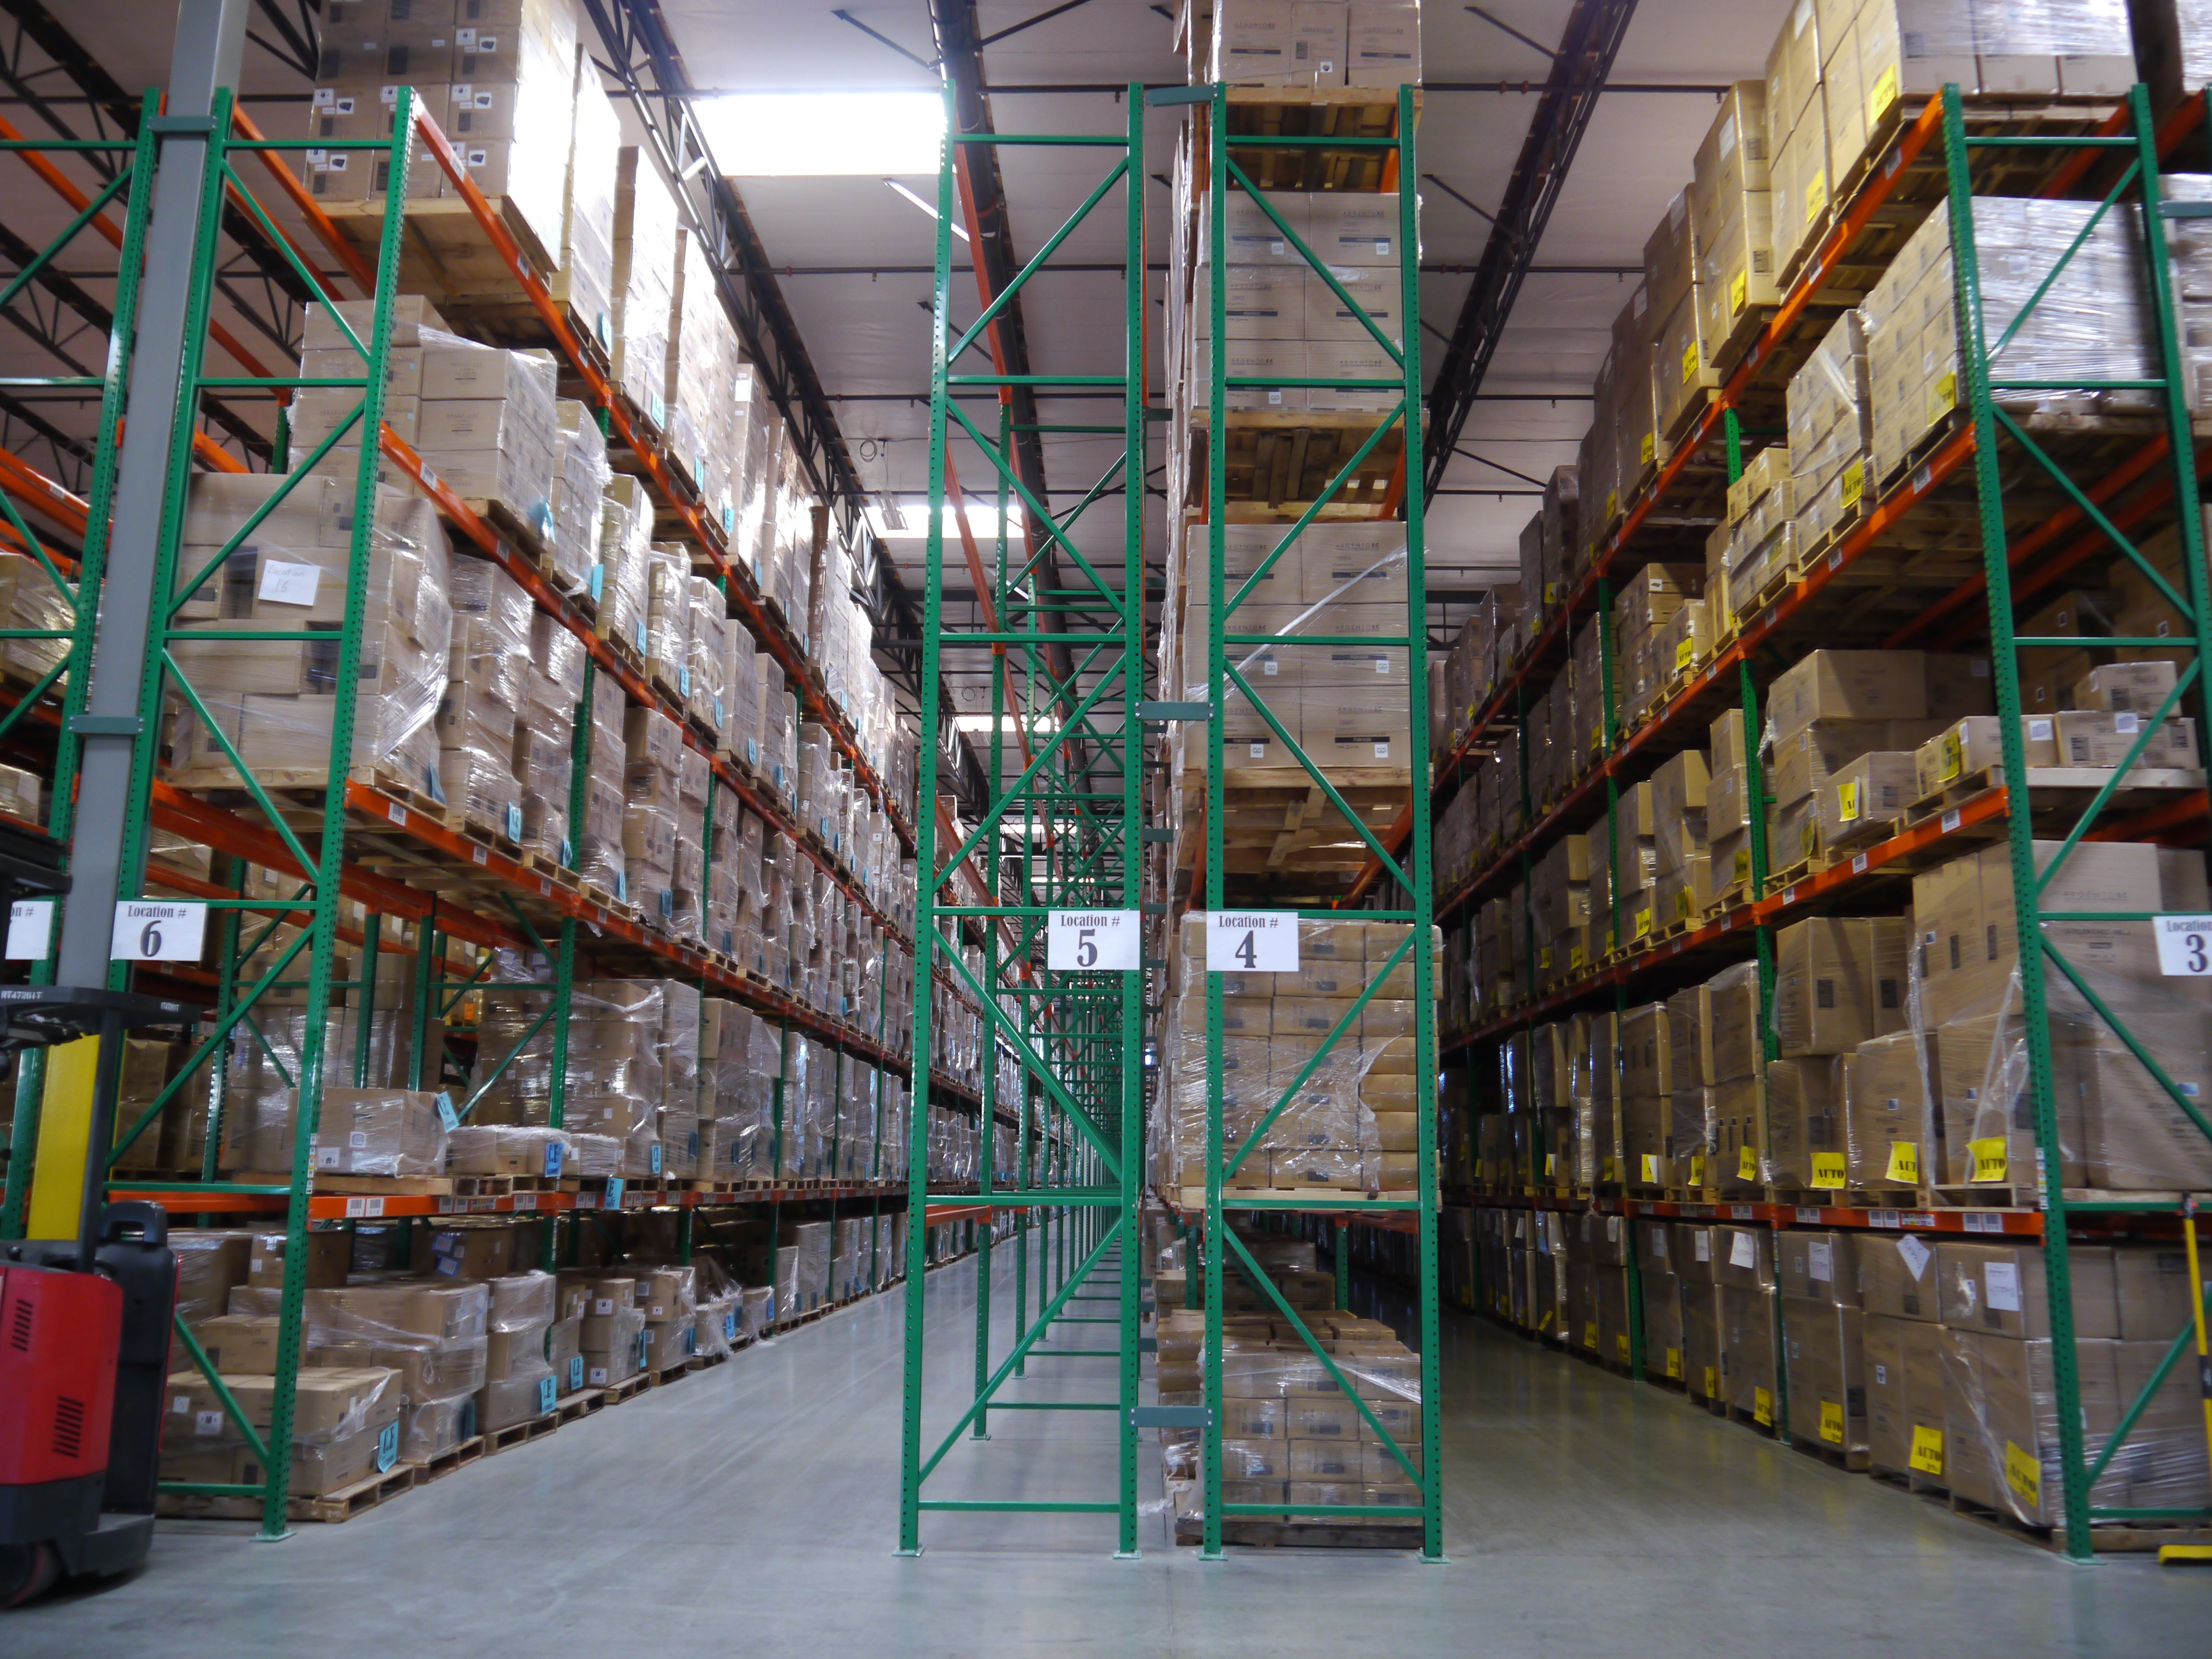 Warehouse Pallet Racks Www Pacificbendinc Com Give Us A Call We Are Have The Best Quality And The Lowest Prices 9 Warehouse Pallet Racking Pallet Rack Pallet